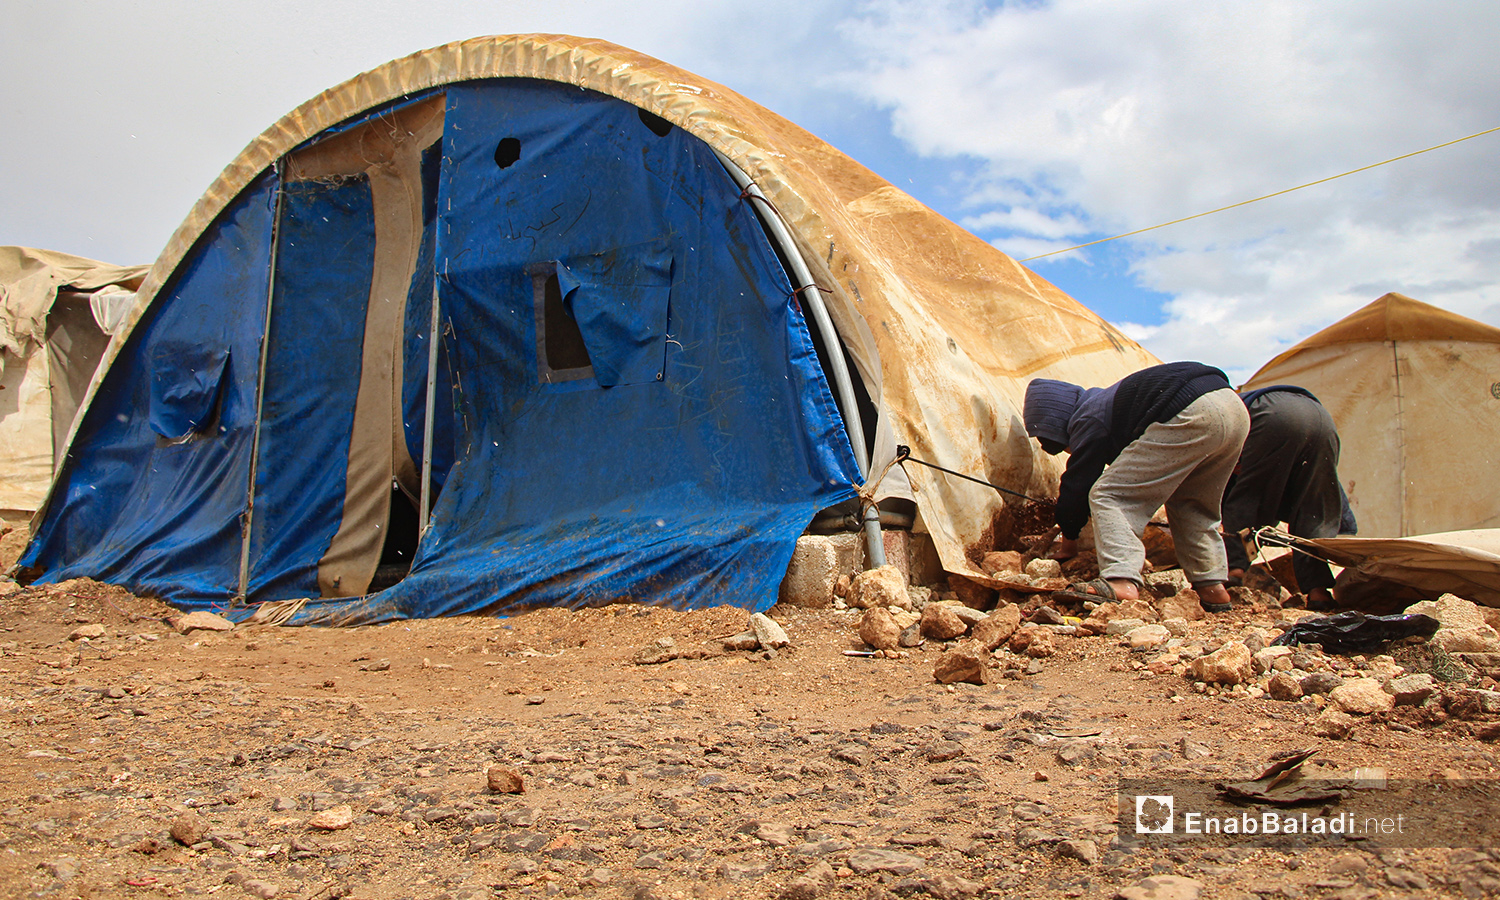 A storm with heavy rain hit the camps for internally displaced people (IDPs) in the northern countryside of Idlib, uprooting the already worn-out tents —24 March 2021 (Enab Baladi / Iyad Abdul Jawad)